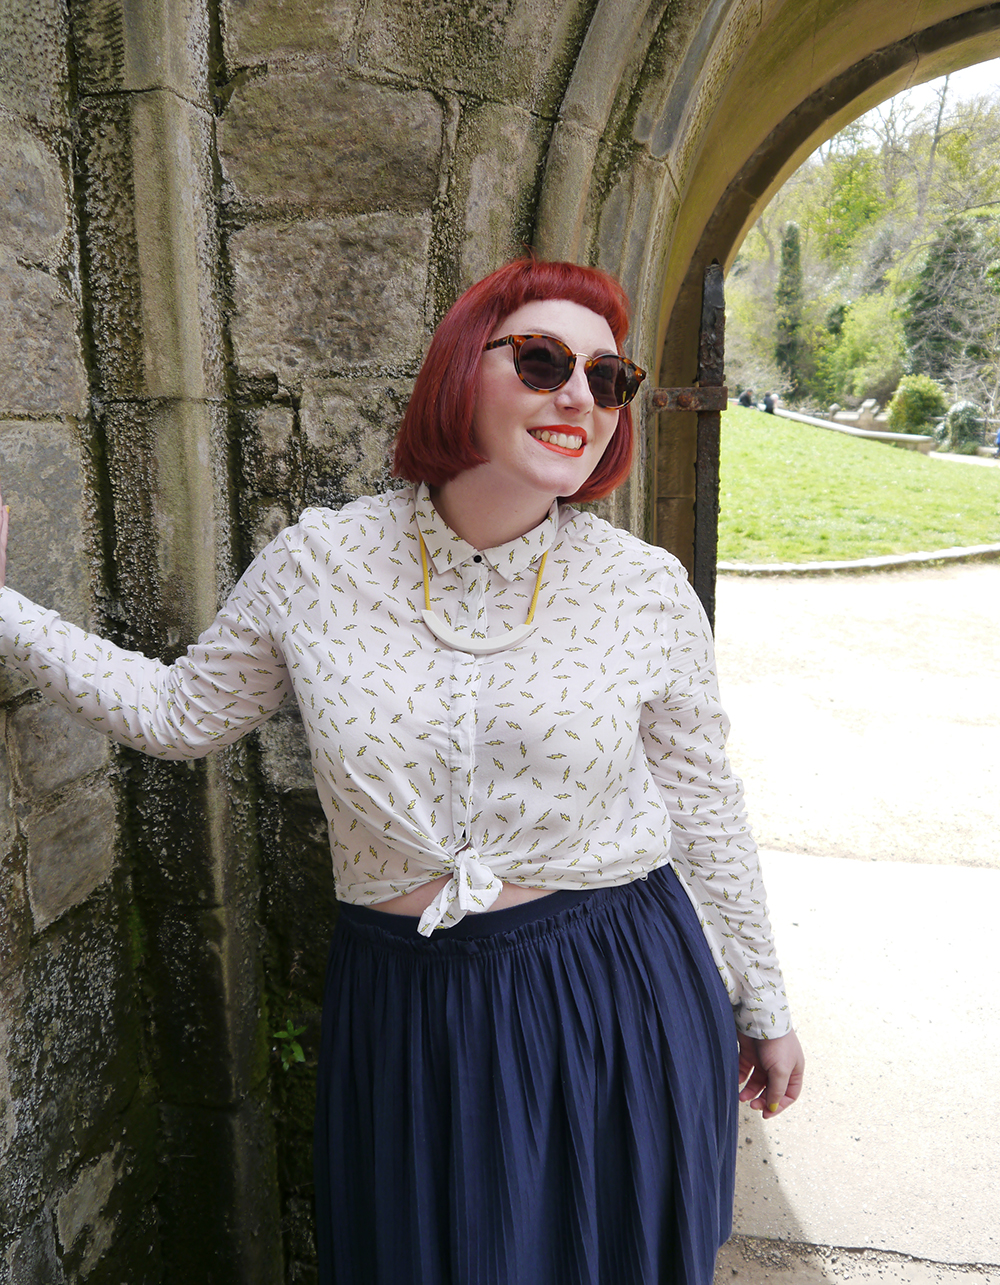 Scottish blogger, red head, Scottish street style, fun street style, colourful street style, colourful blogger, colourful outfit, red bob, ginger bob, sunlglasses style, #seewithiolla, iolla, Beth lamont necklace, yellow accessories, lightning bolt shirt, patterned shirt, denim jacket, yellow nails, Scottish summer, Murray sunglasses, tortoise shell sunglasses